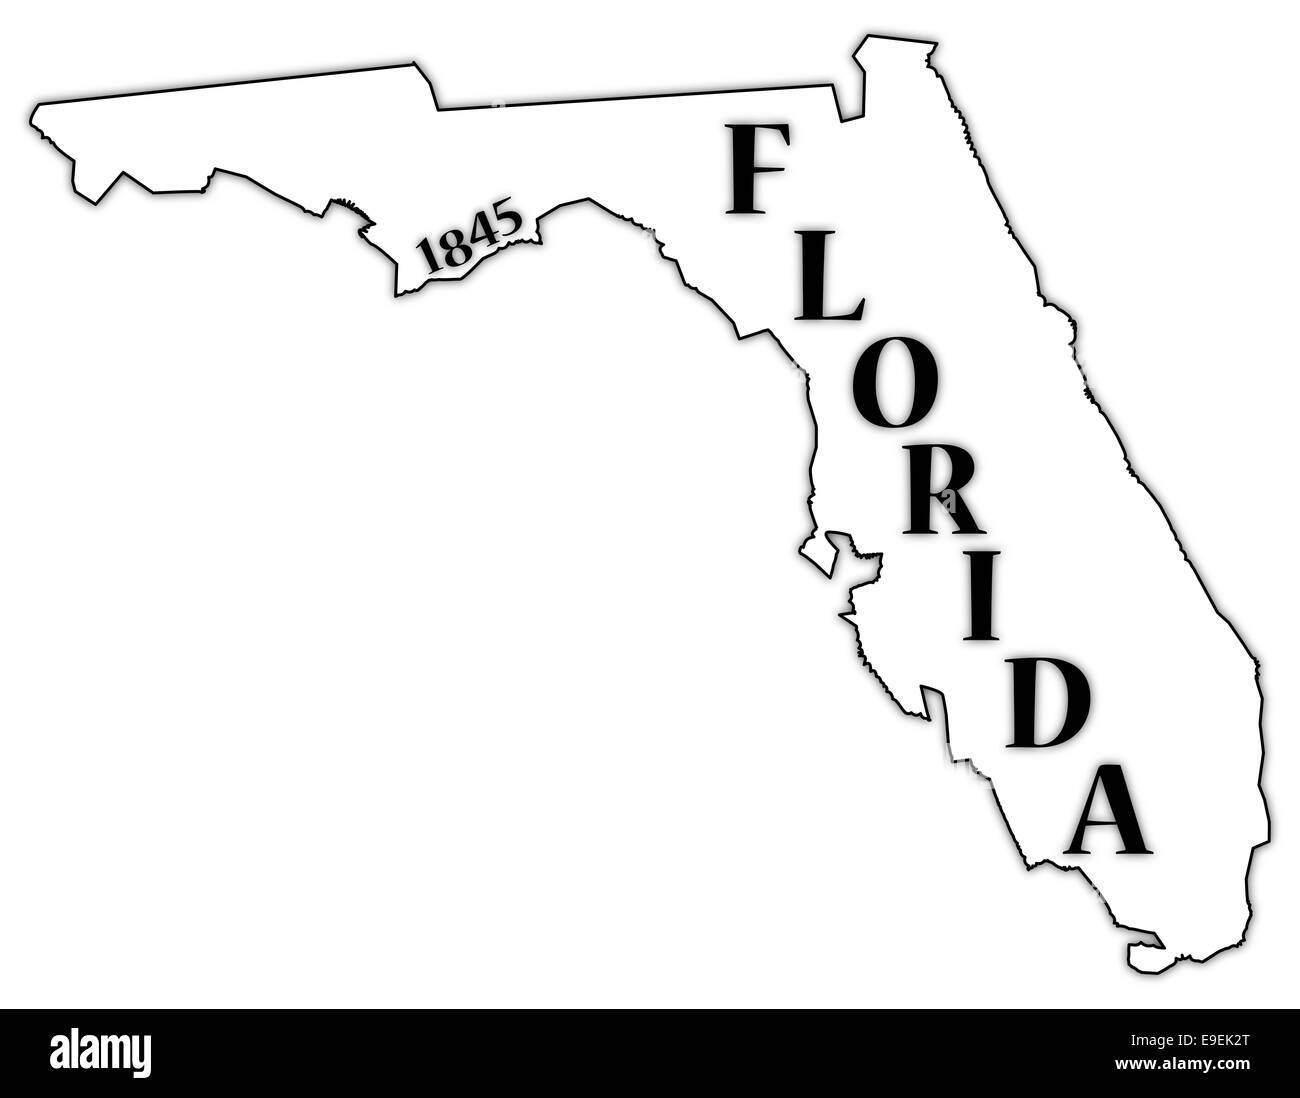 A Florida State Outline With The Date Of Statehood